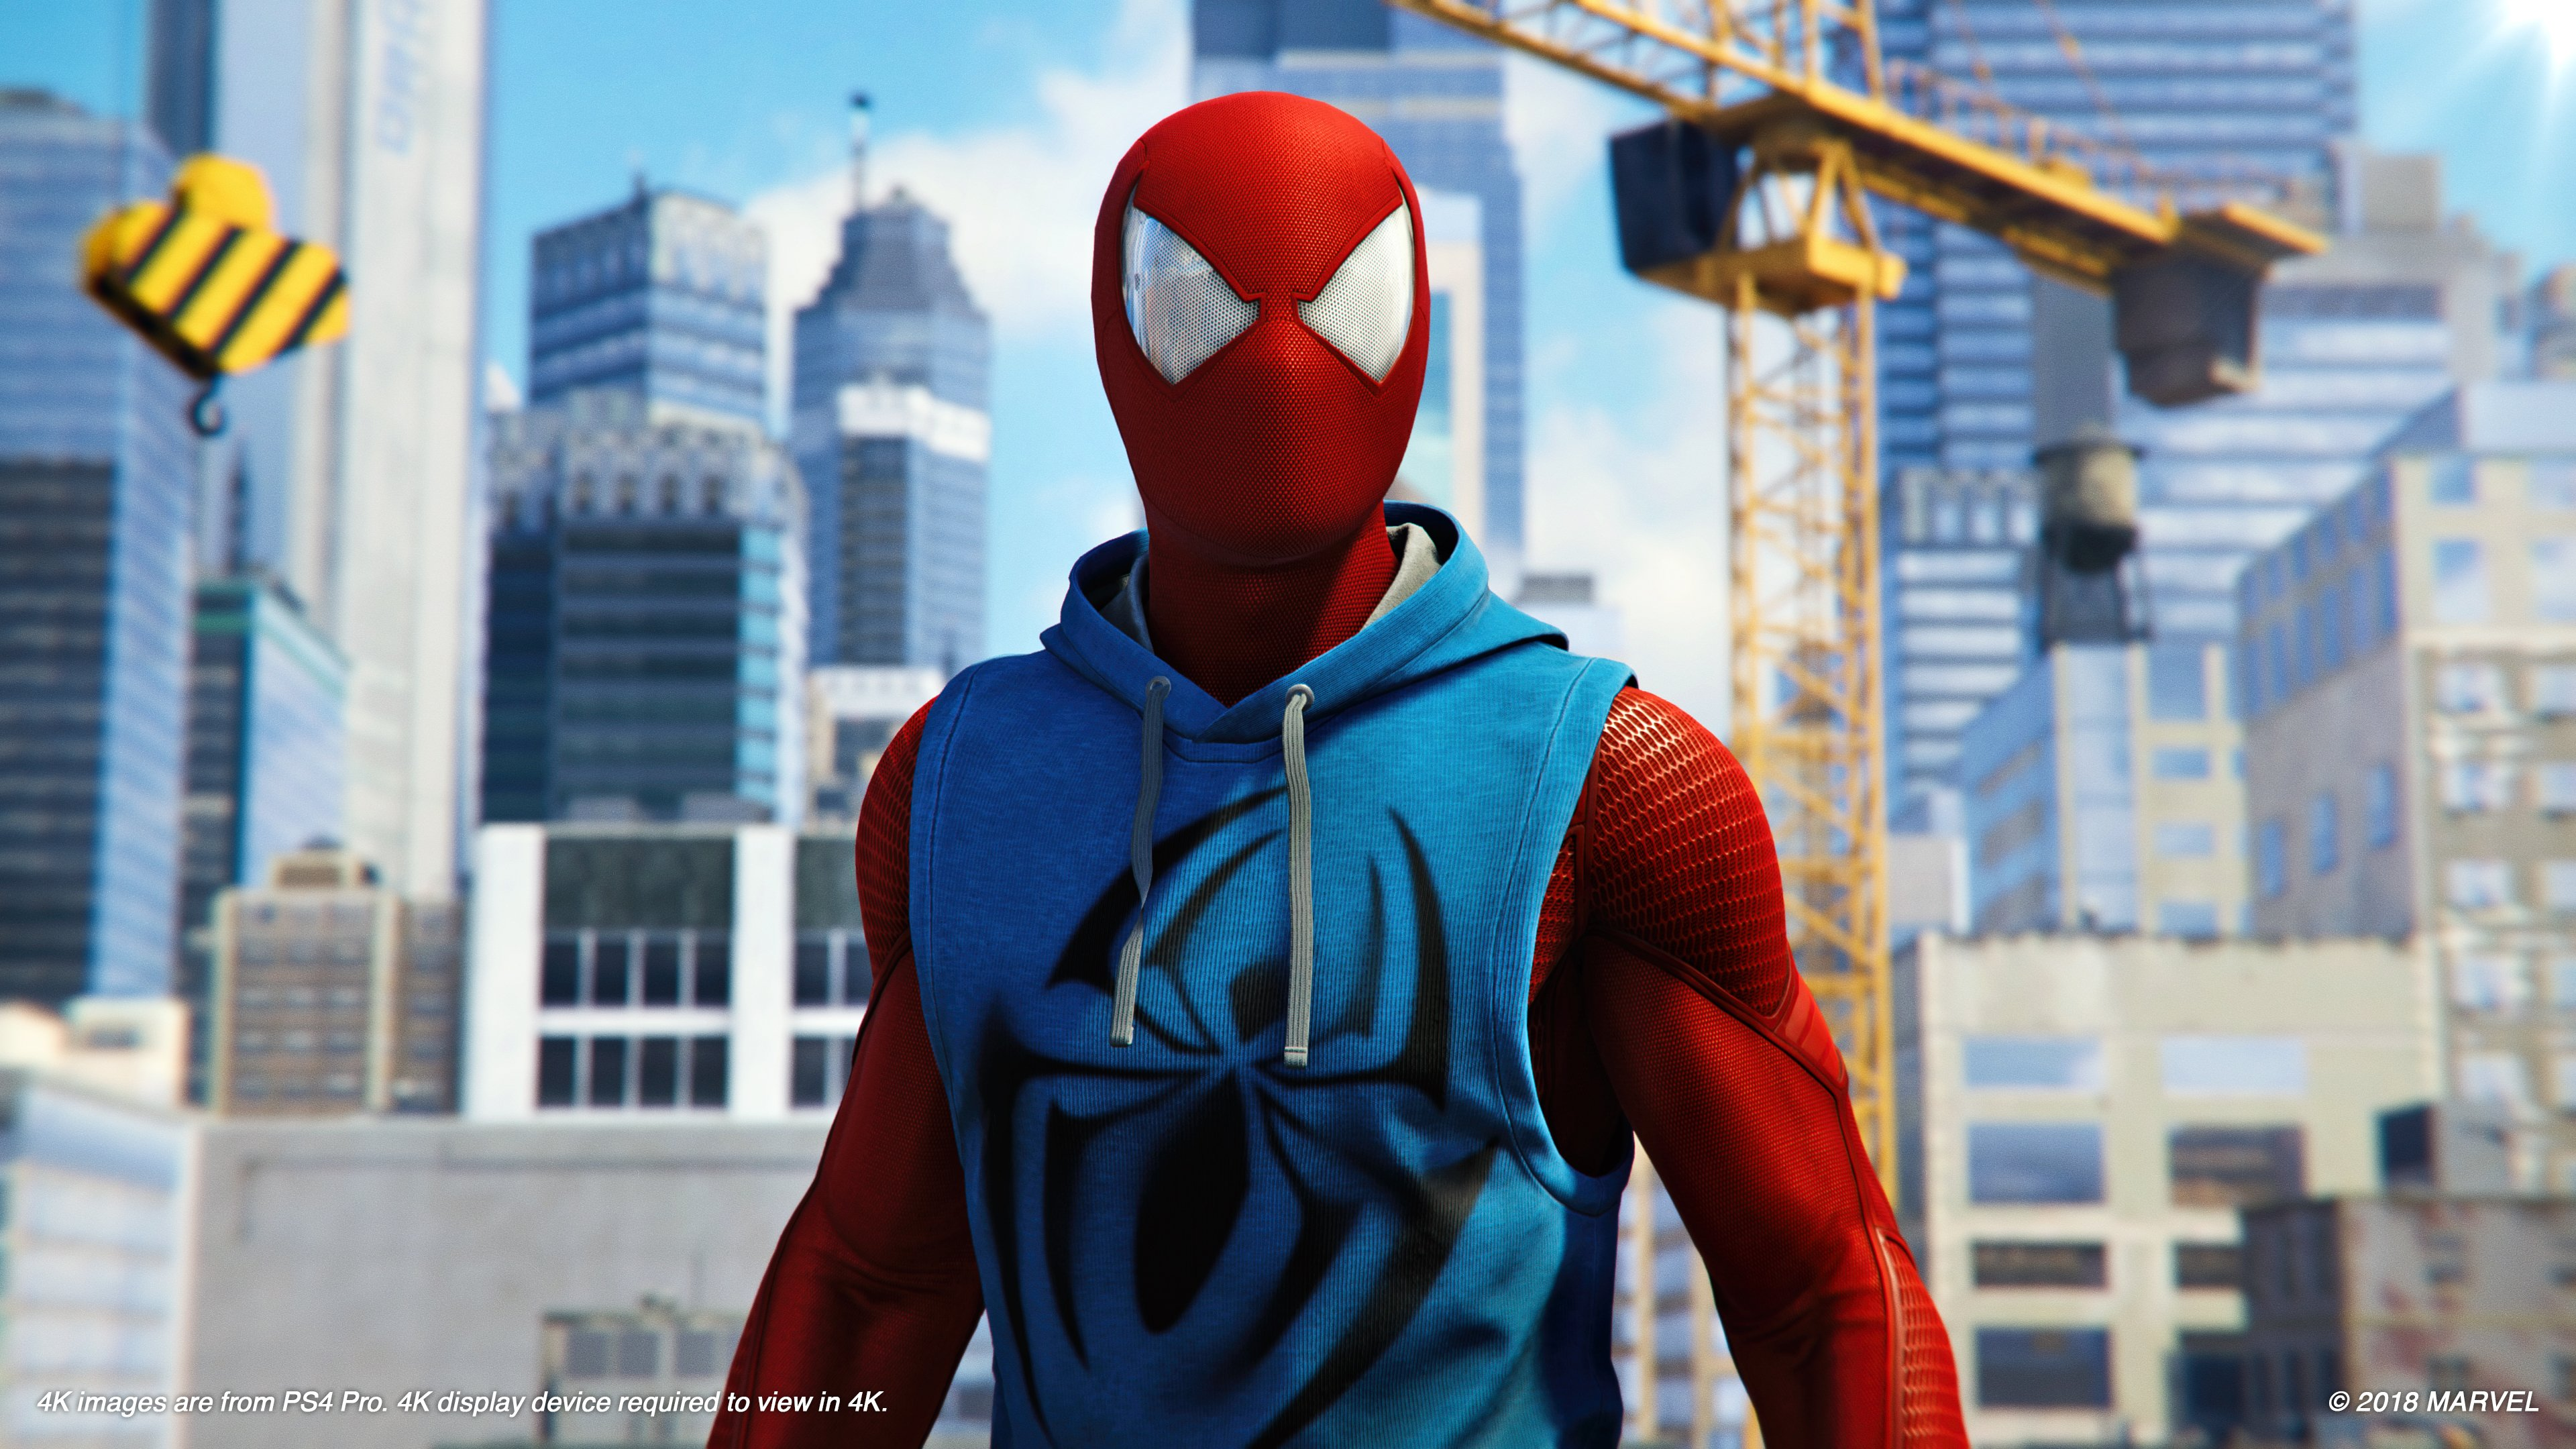 New game plus mode will be swinging over to Spider-Man in the future